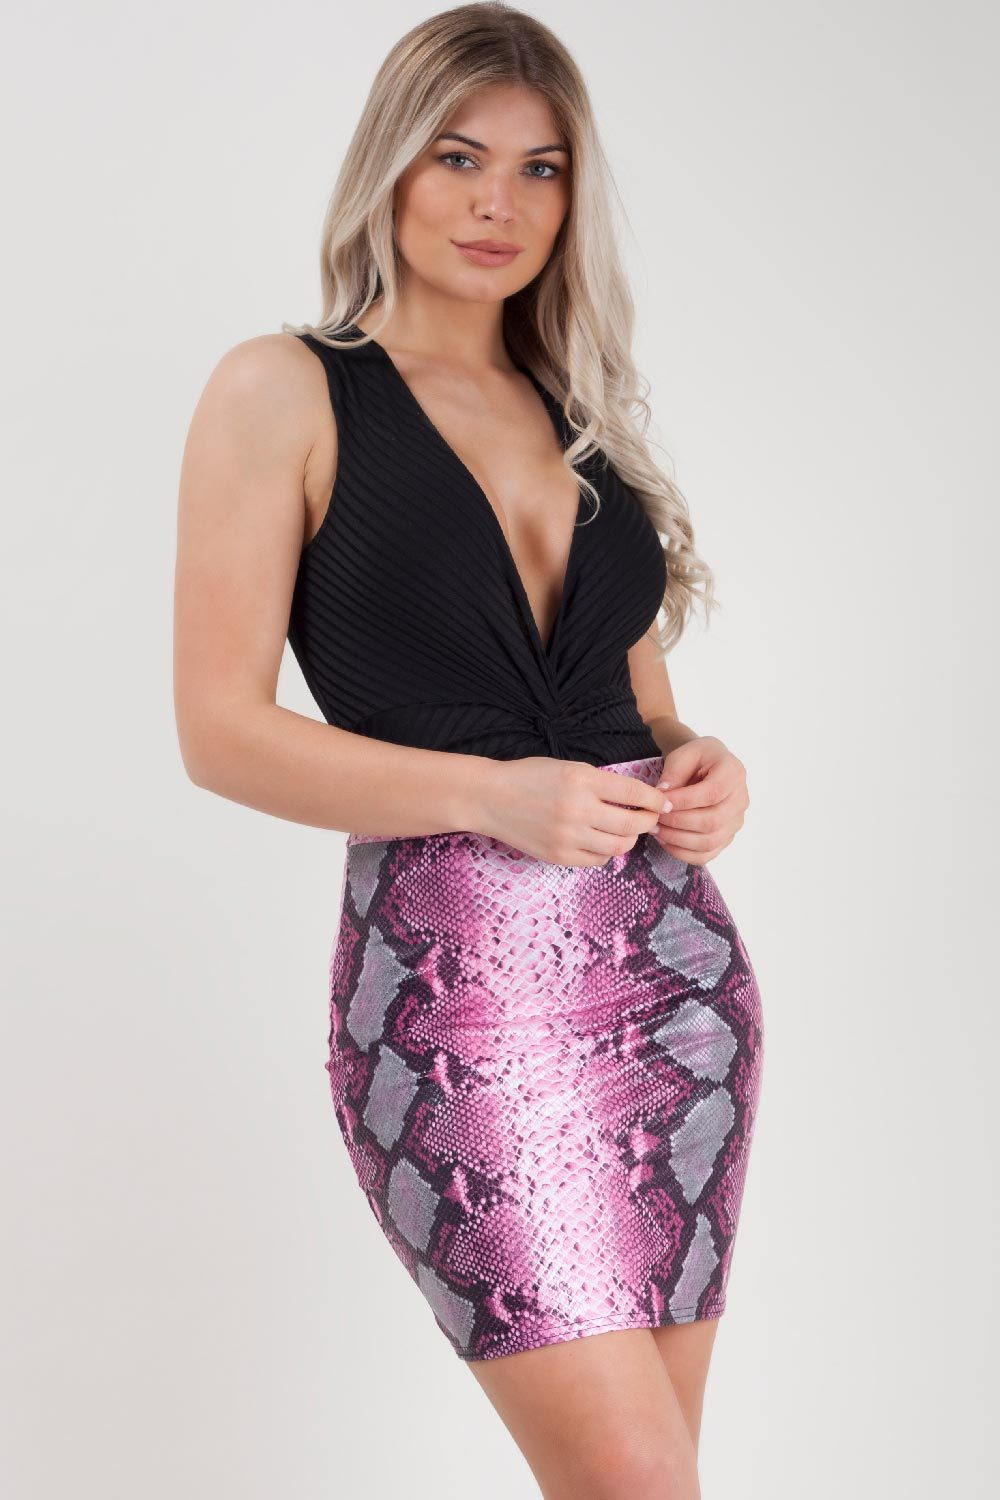 snake print bodycon mini skirt uk size 6